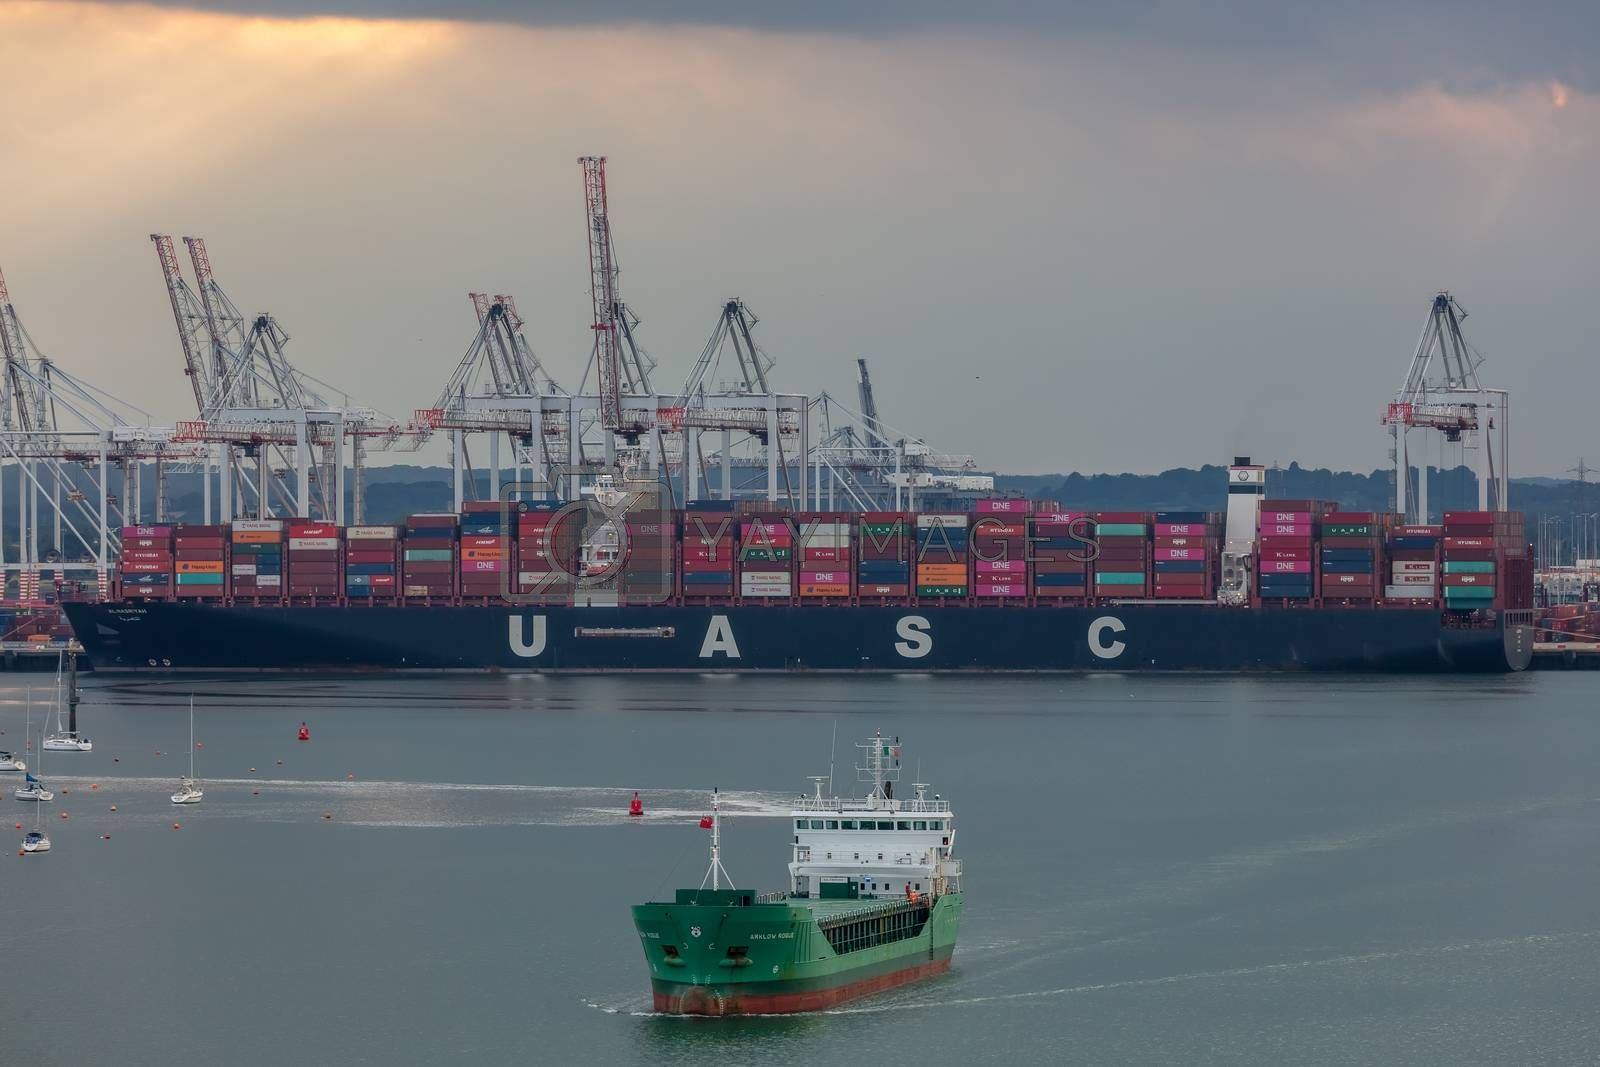 Southampton port, England, UK - June 08, 2020: Aerial view of Southampton port. Sunset. Massive container ship UASC being loaded in the background. Arklow Rogue ship sailing in the foreground.